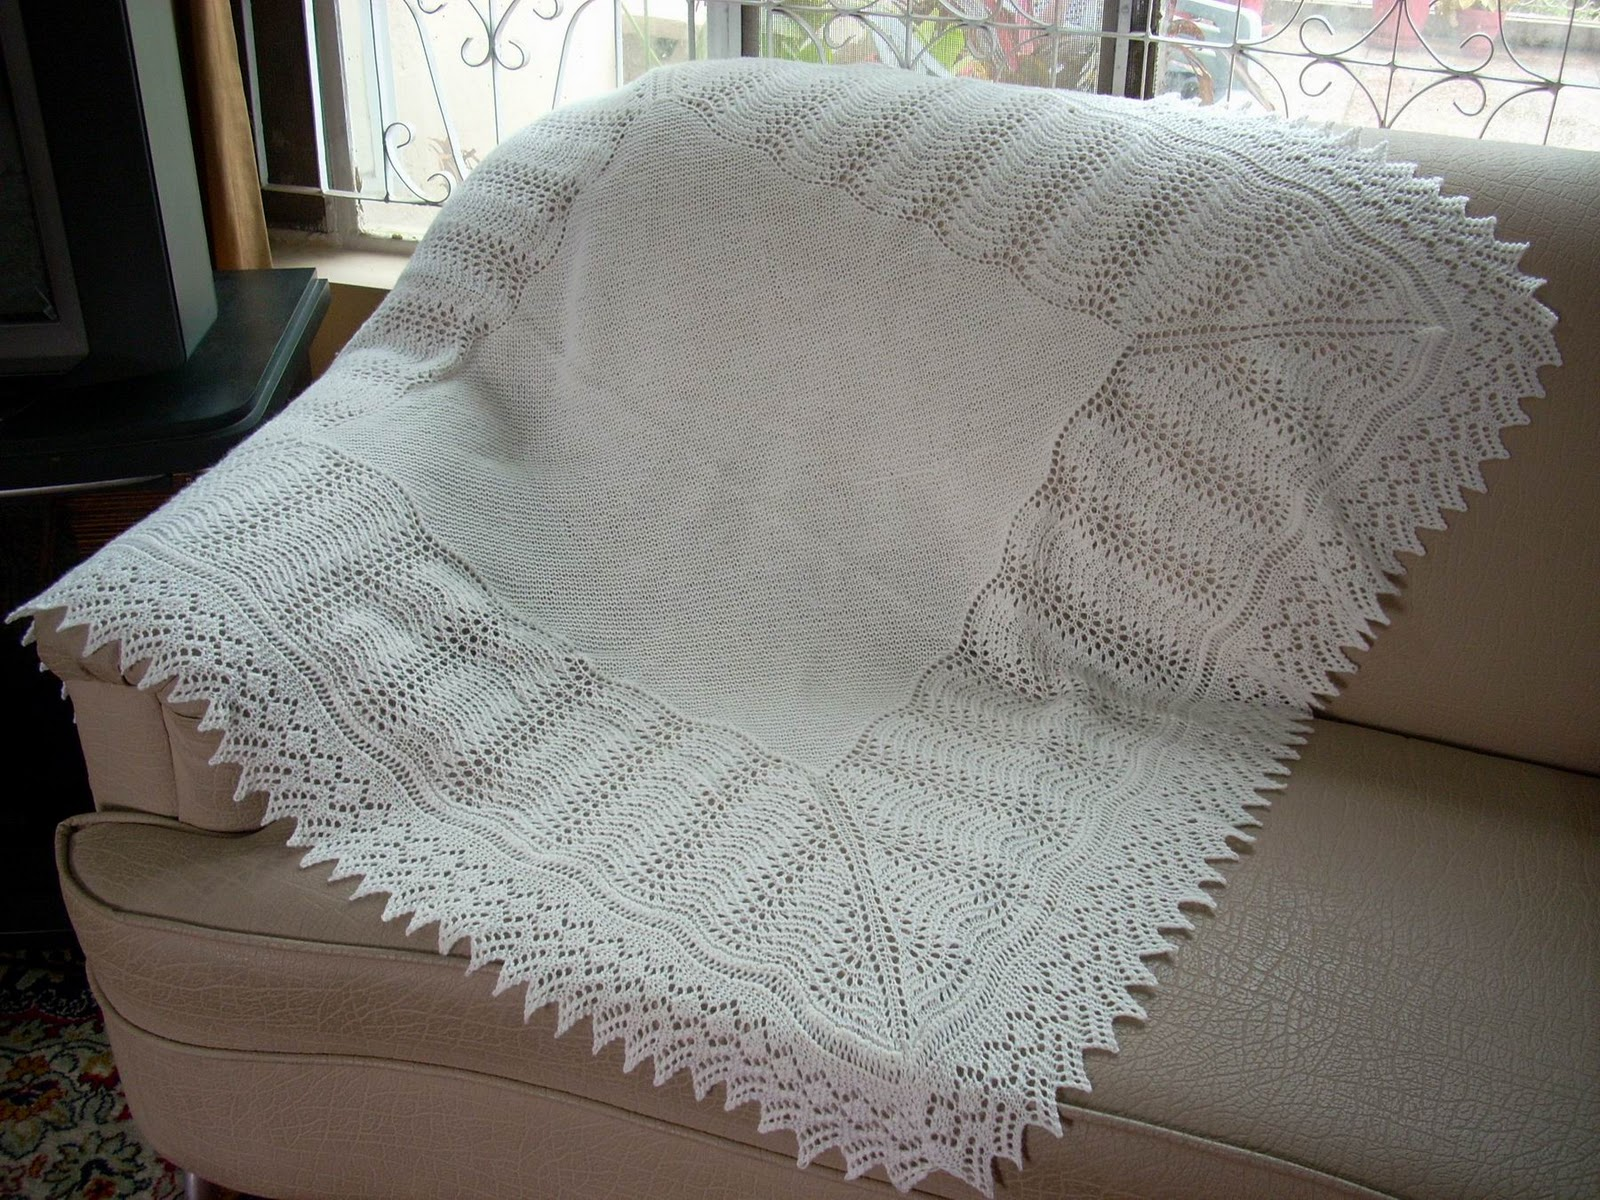 Free Knitting Patterns For Baby Blankets And Shawls : Umme Yusuf: Shetland Baby Blanket/Shawl